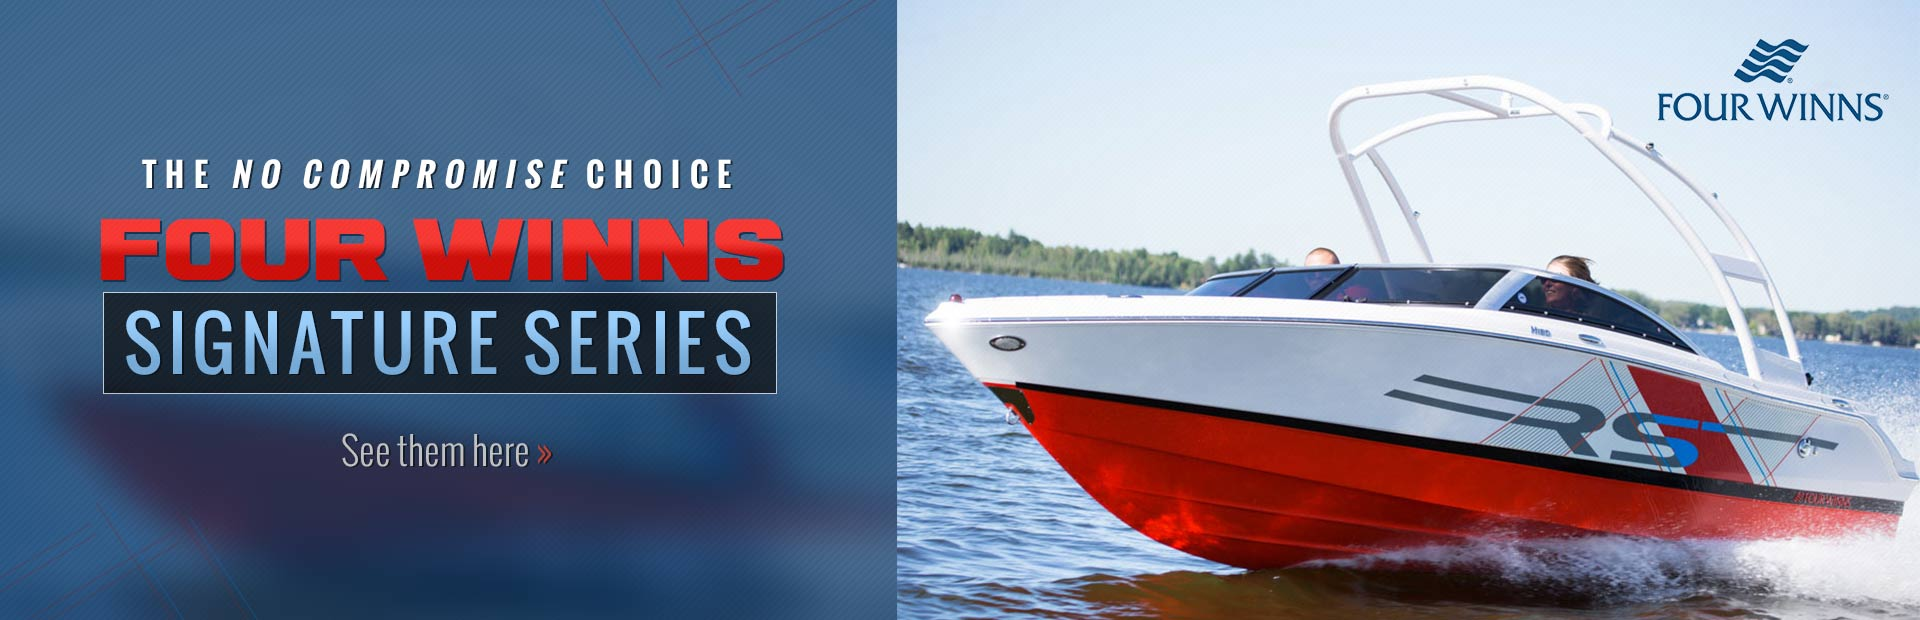 Four Winns Signature Seriess Boats: Click here to view the models.